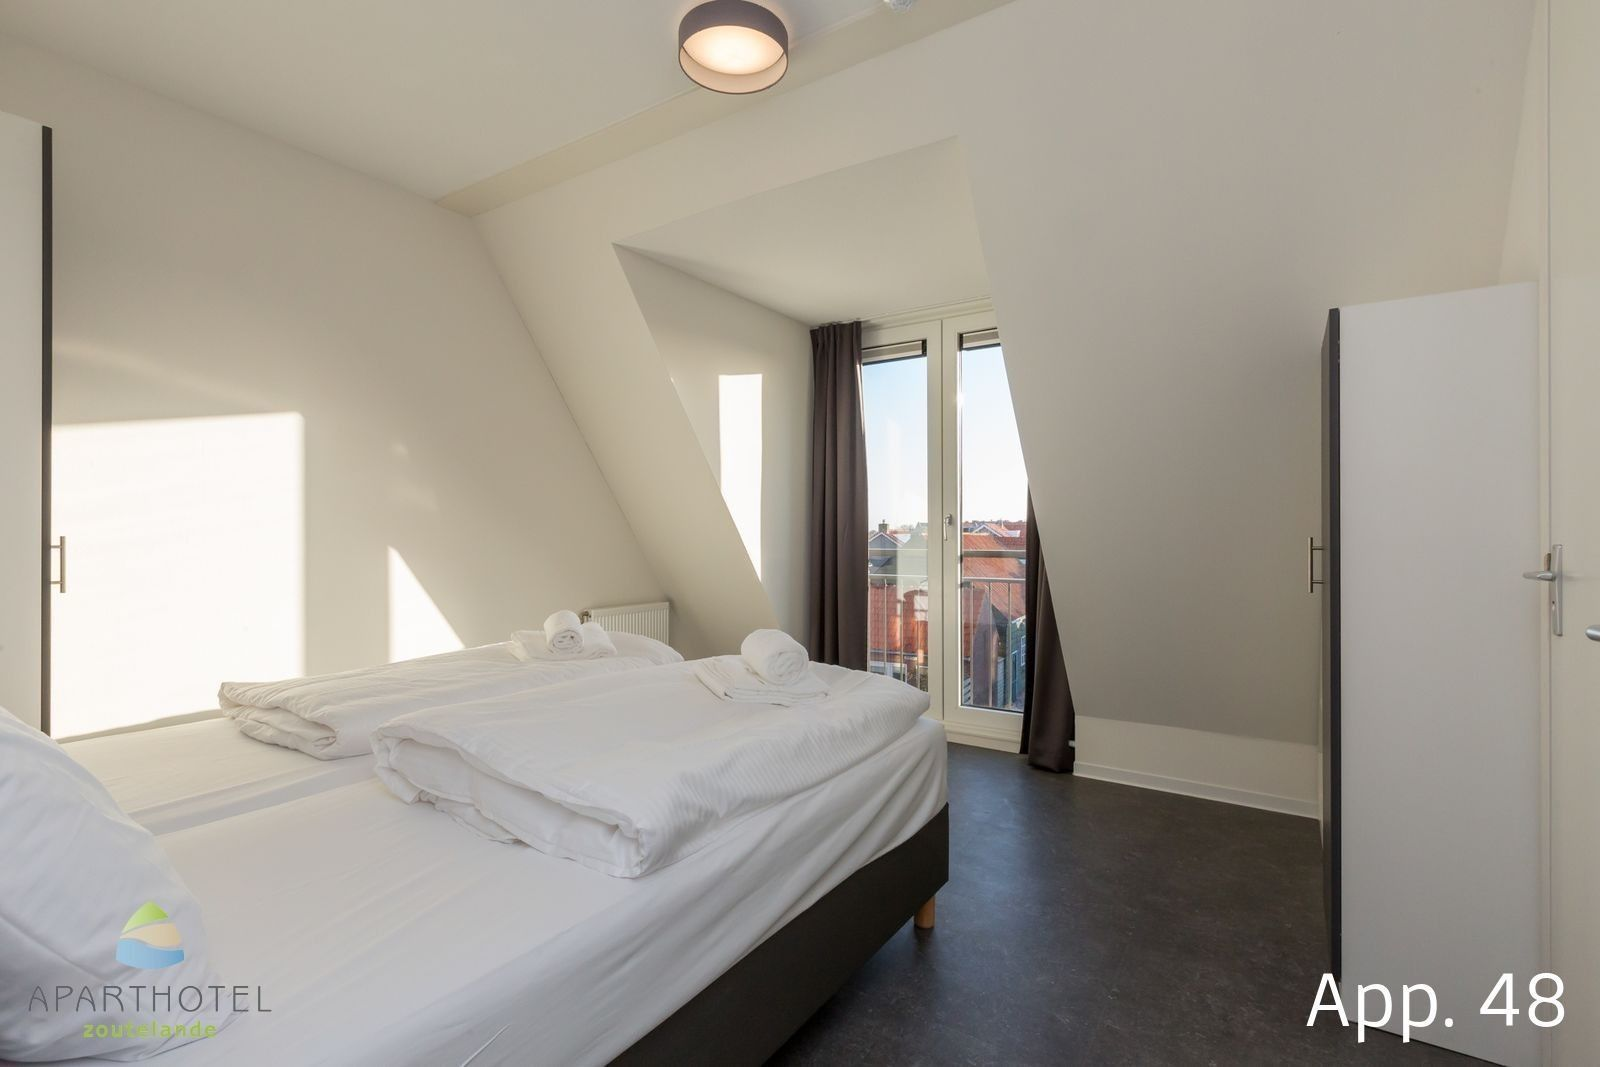 Luxuriöses Appartement für 2 Personen